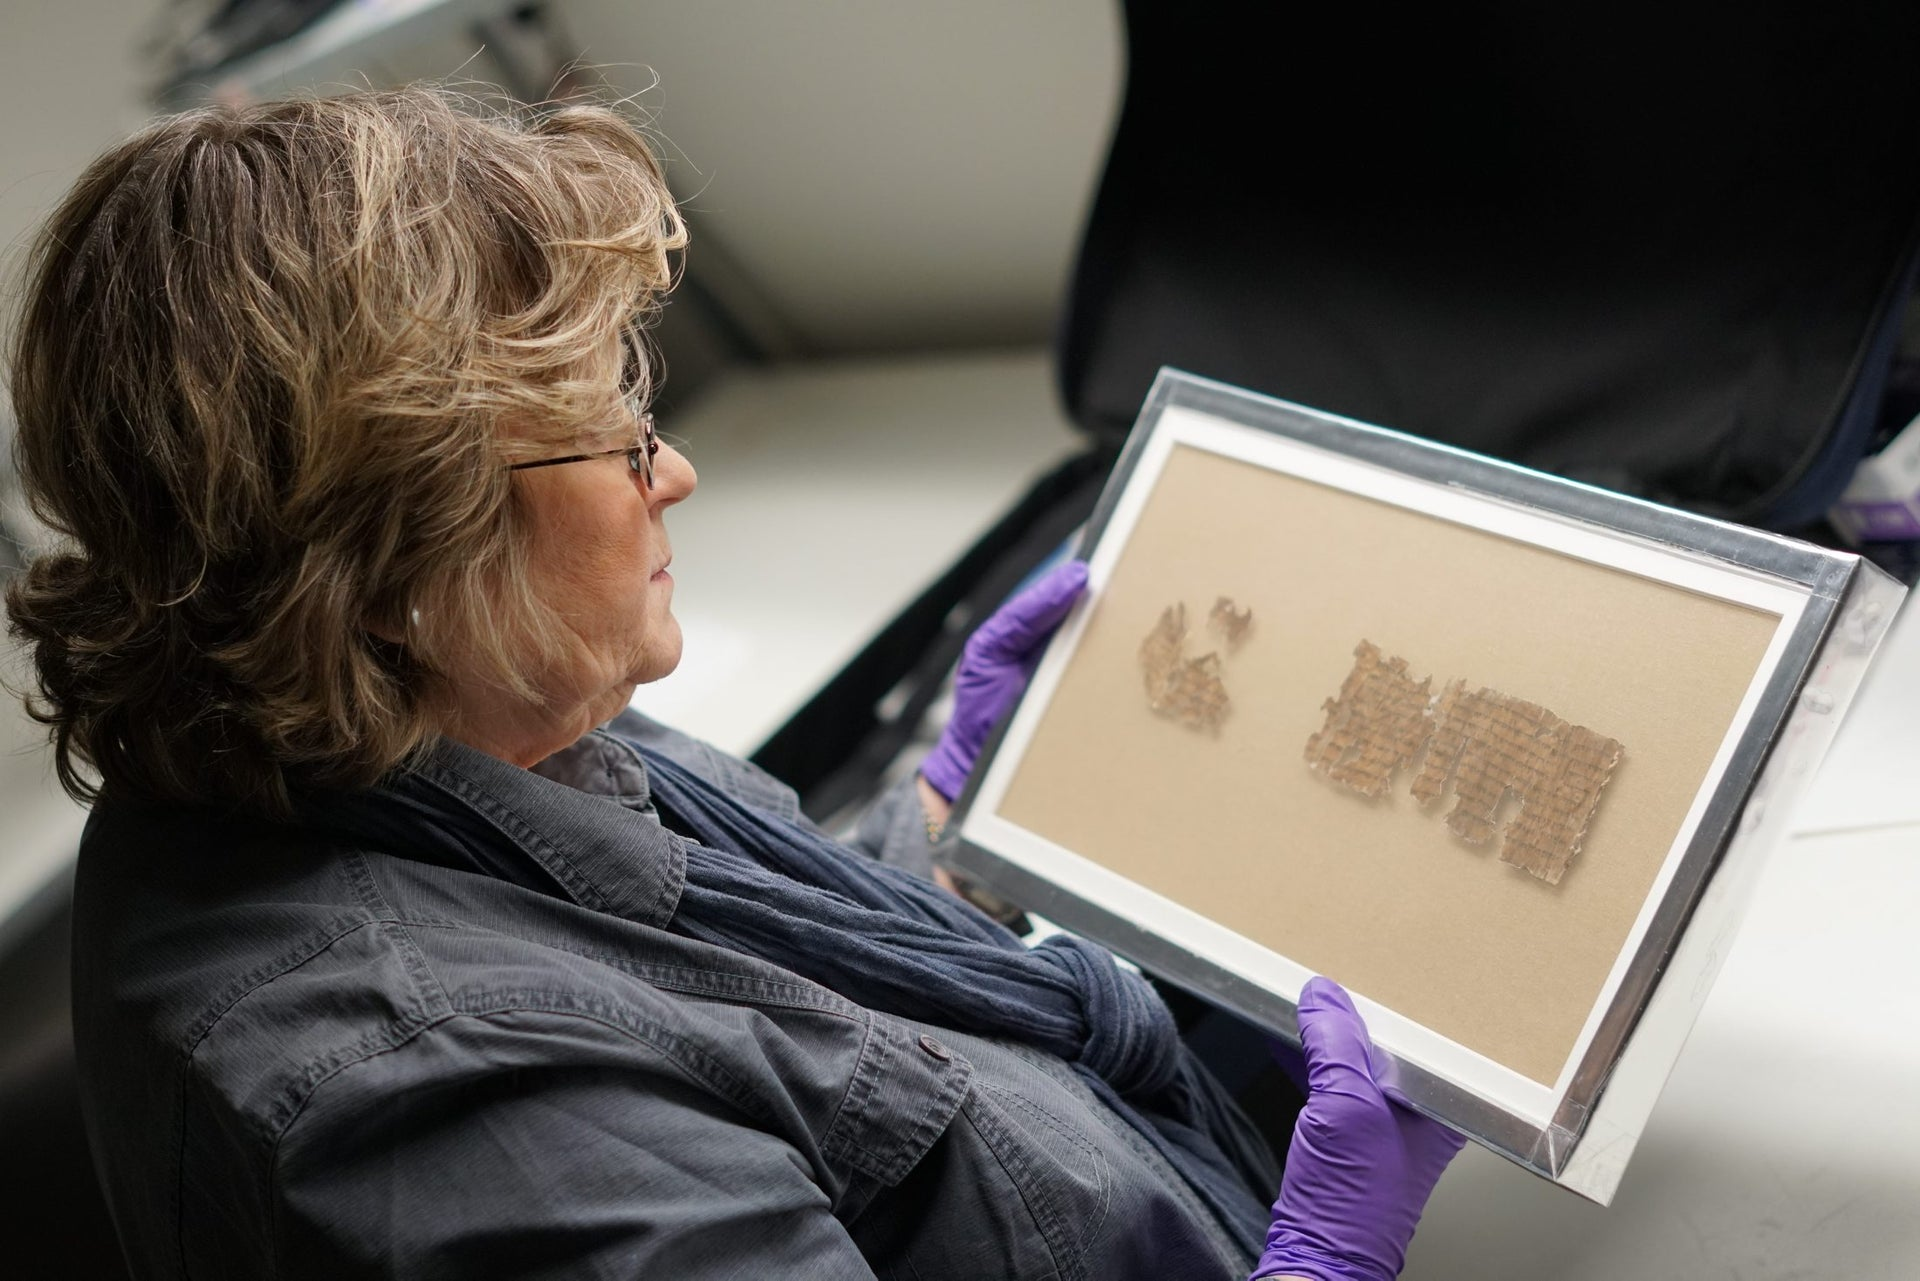 Preserver Tatiana Treiger holding the Tohorot scroll fragment. Photo shows a light-haired woman, whose face cannot be seen (but we can see that she is wearing glasses), holding a framed bit of the Dead Sea Scrolls.